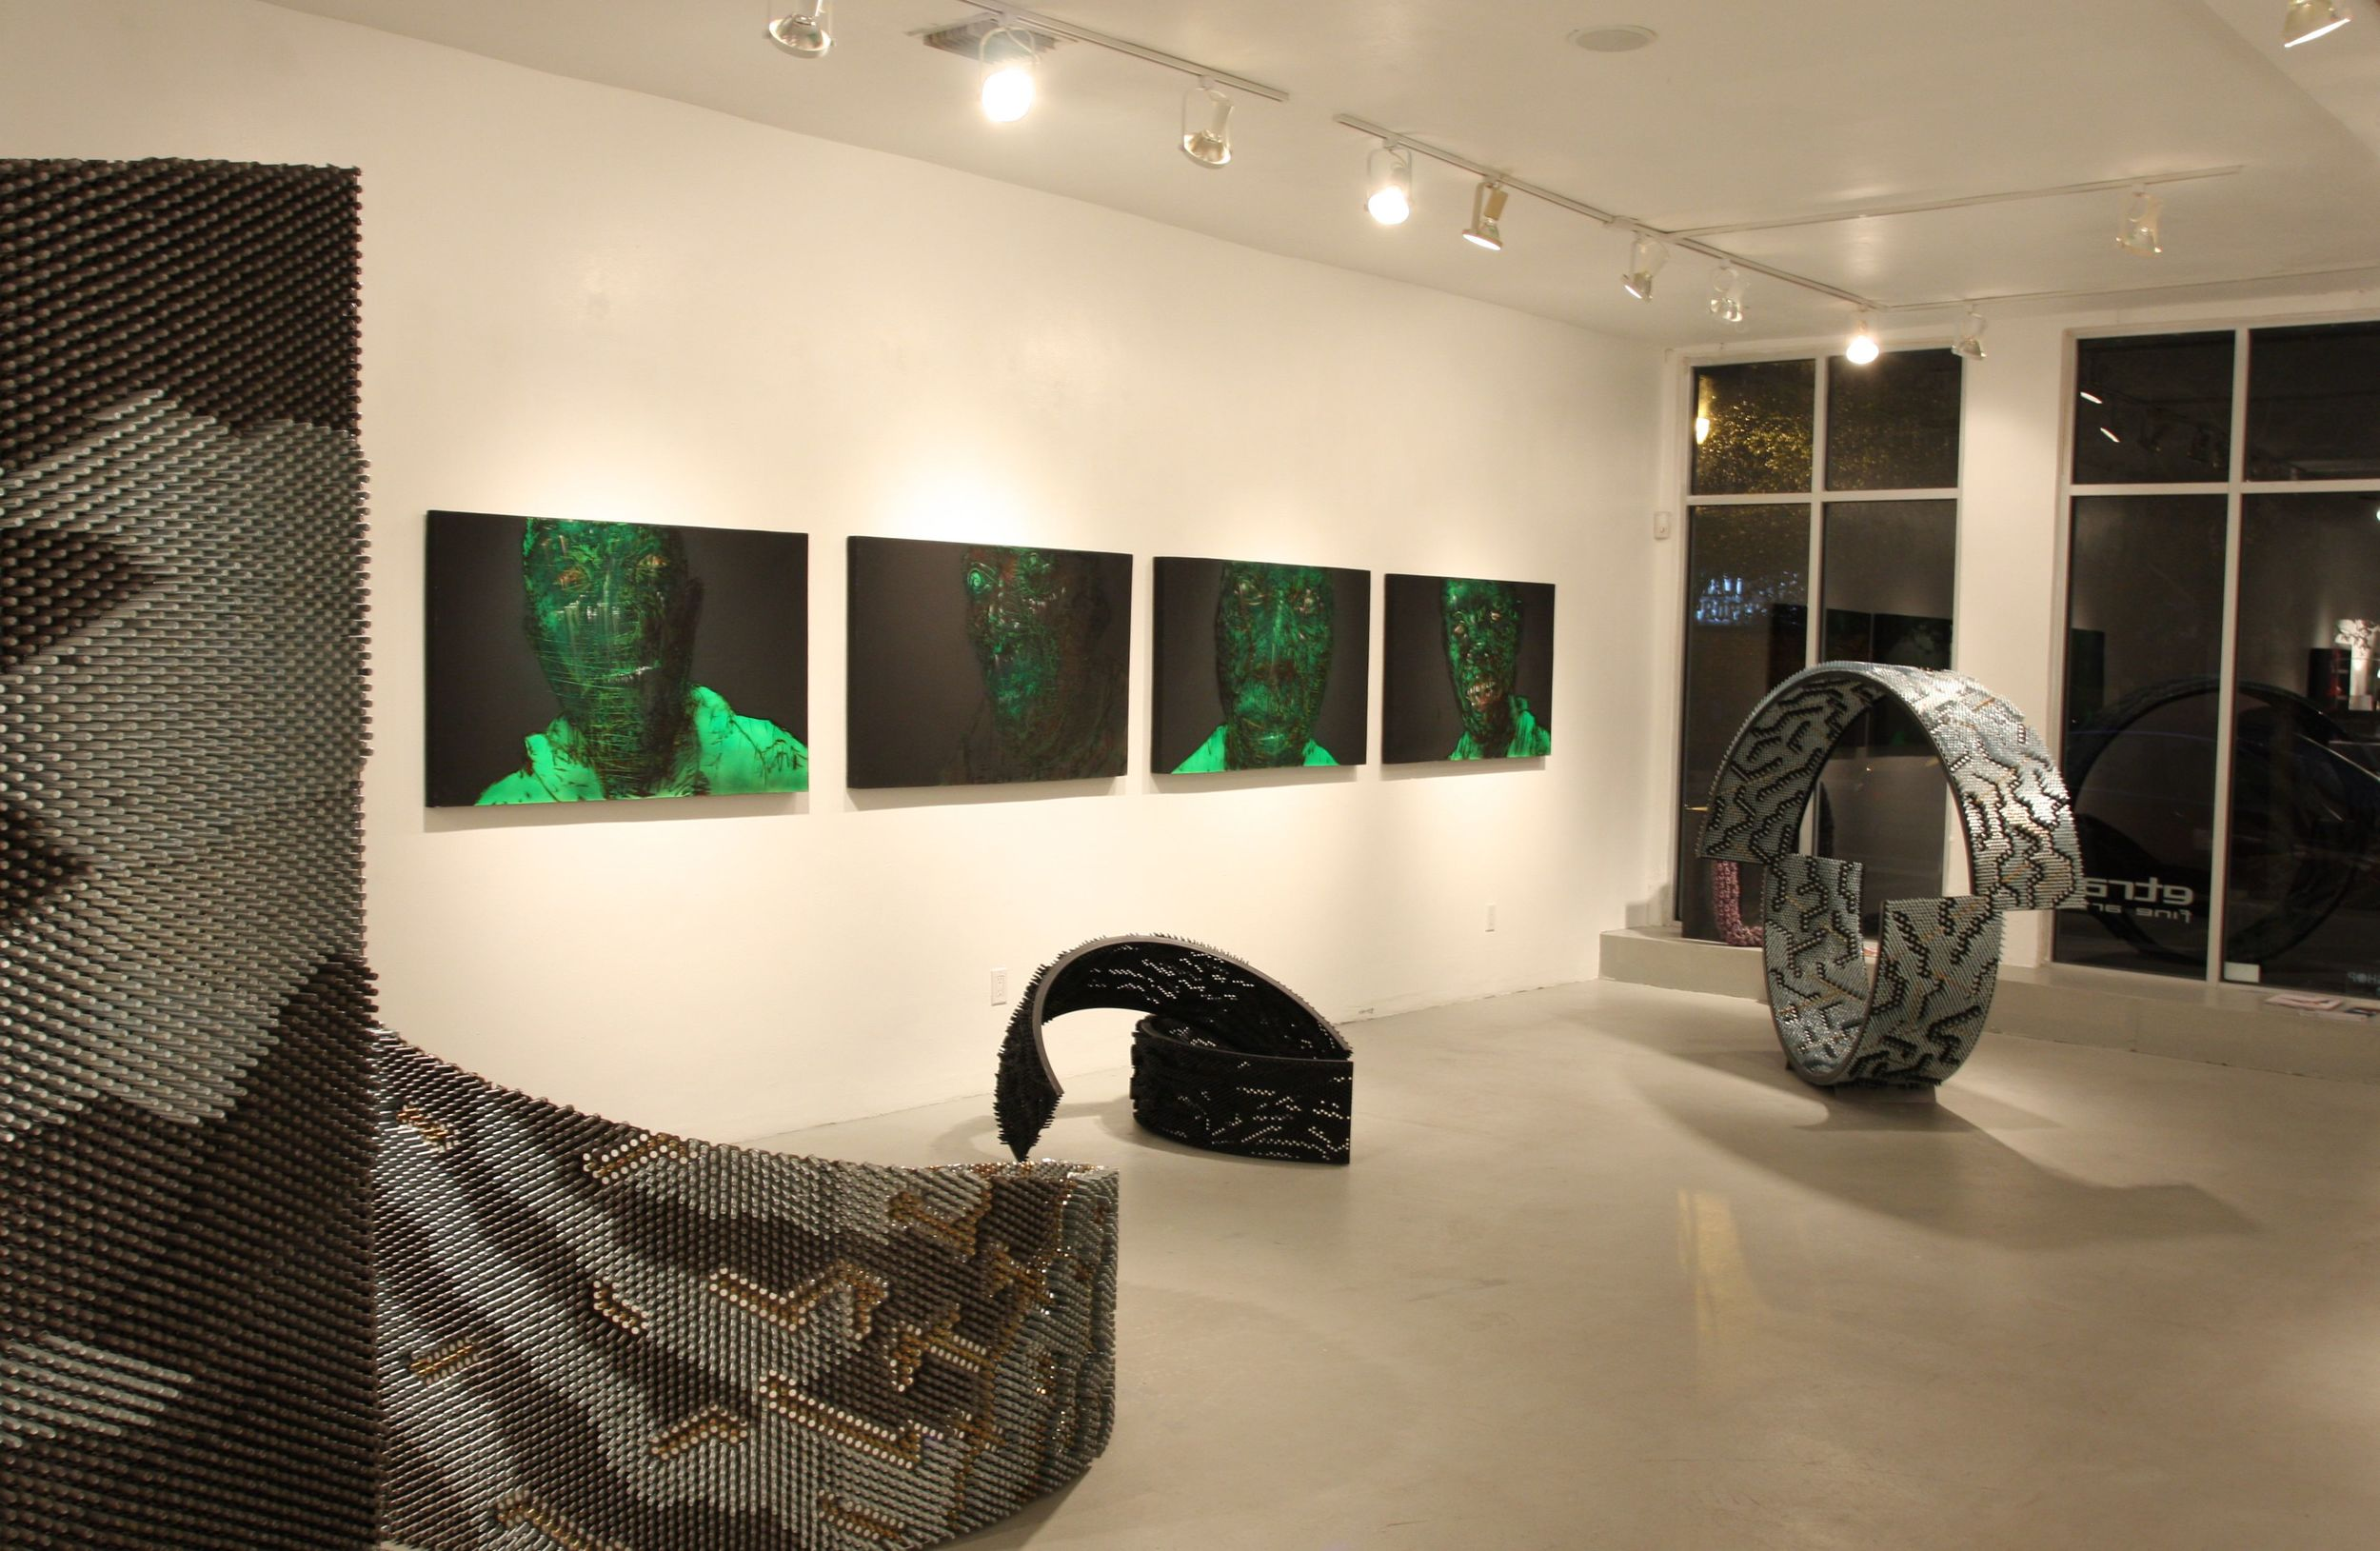 Etra fine art miami gallery, paintings, sculptures, miami usa florida, about